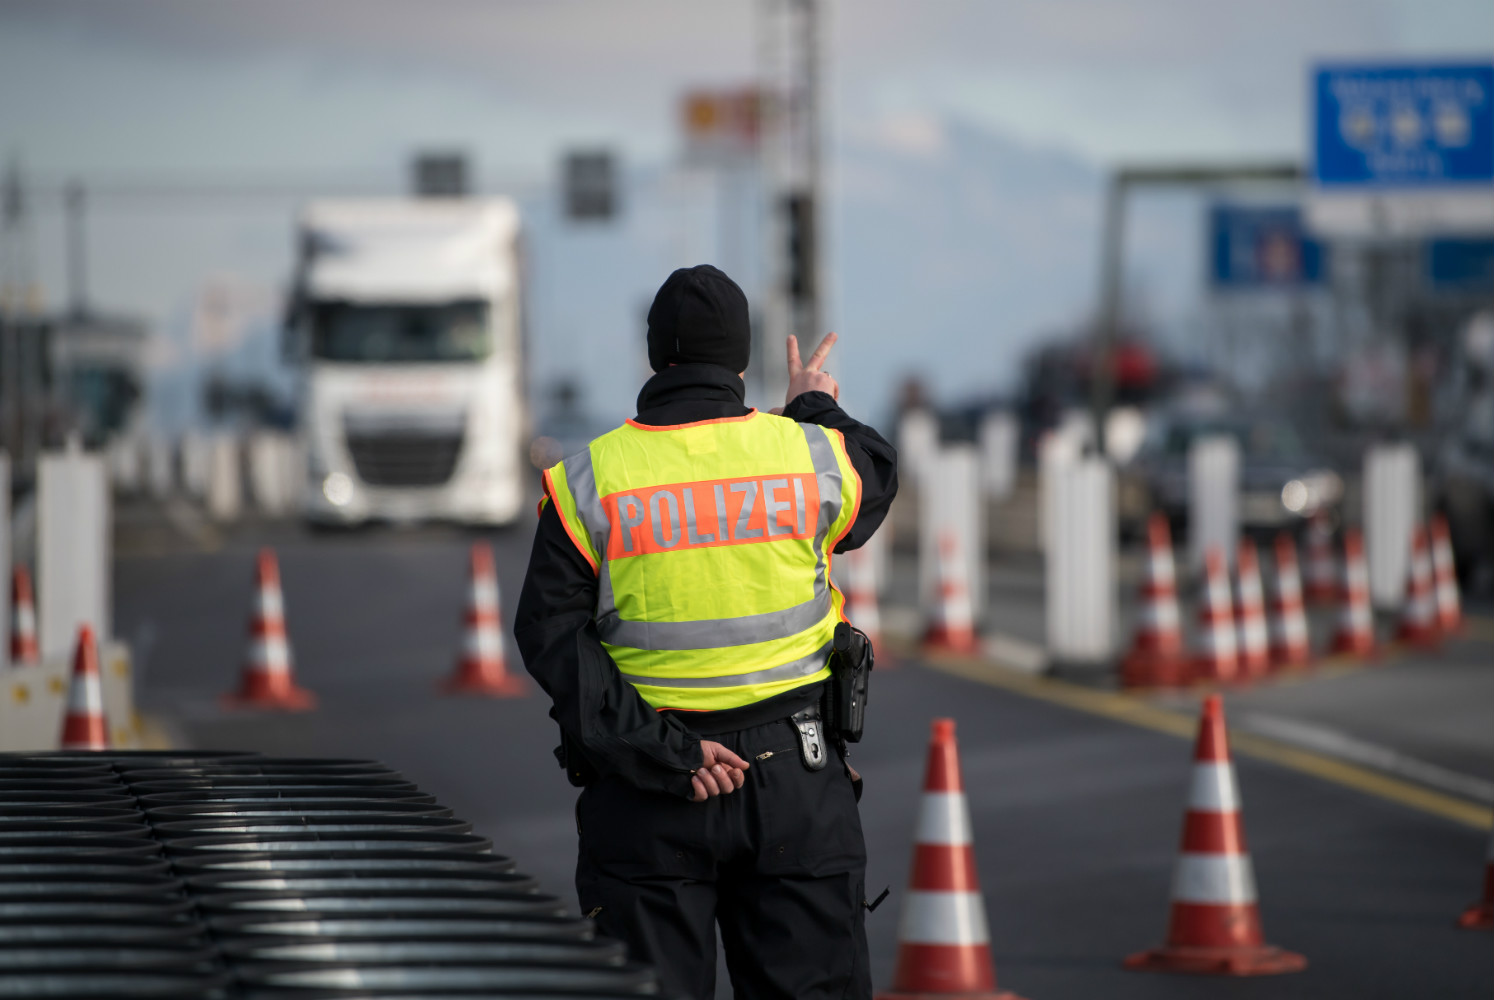 Austria extends border checks. Bavarians have a similar plan.